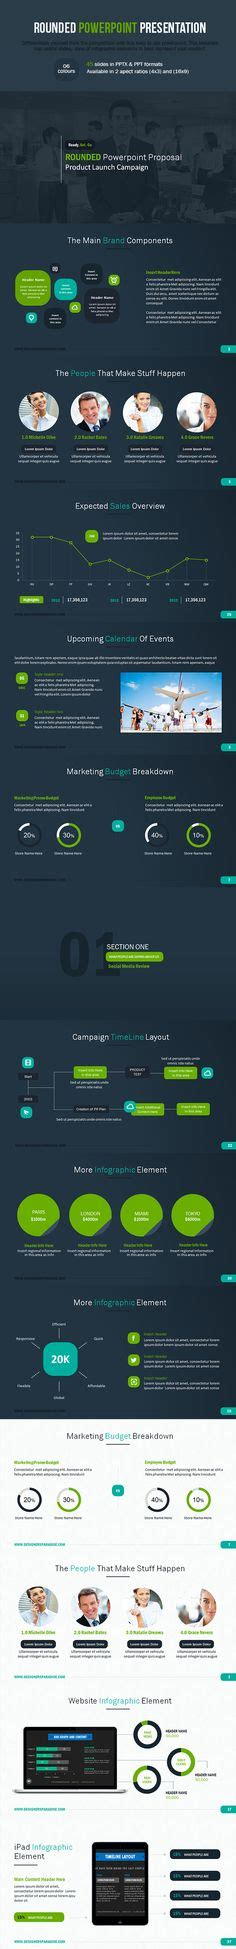 powerpoint template by design district via behance 1000 images about ppt on pinterest powerpoint